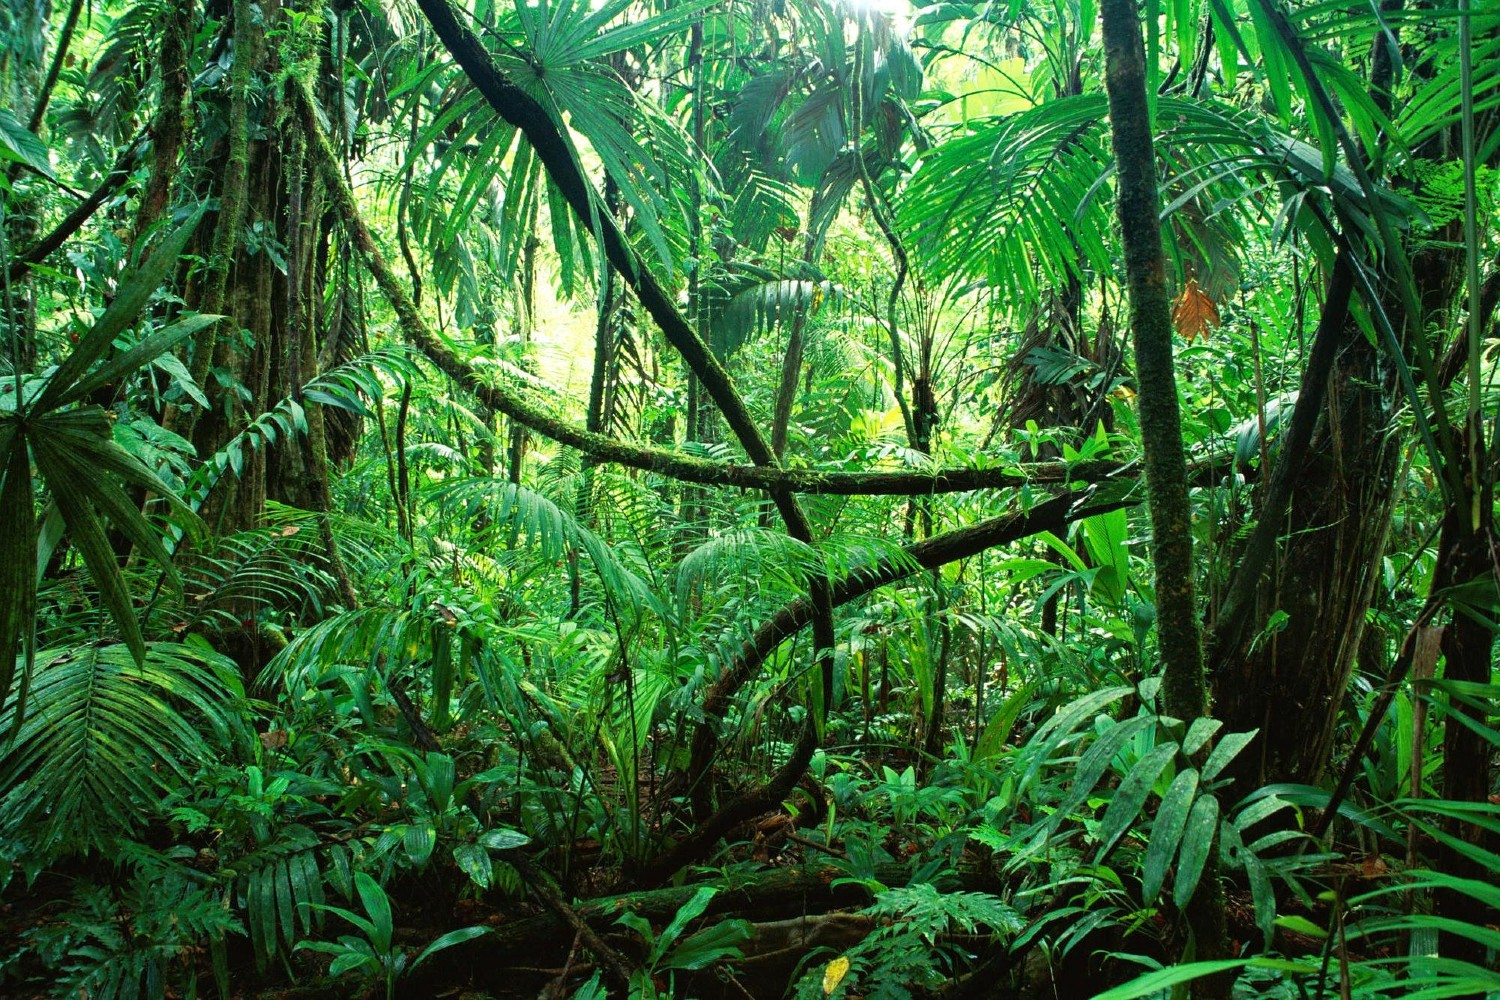 A jungle dense with green ferns, palms and foliage.